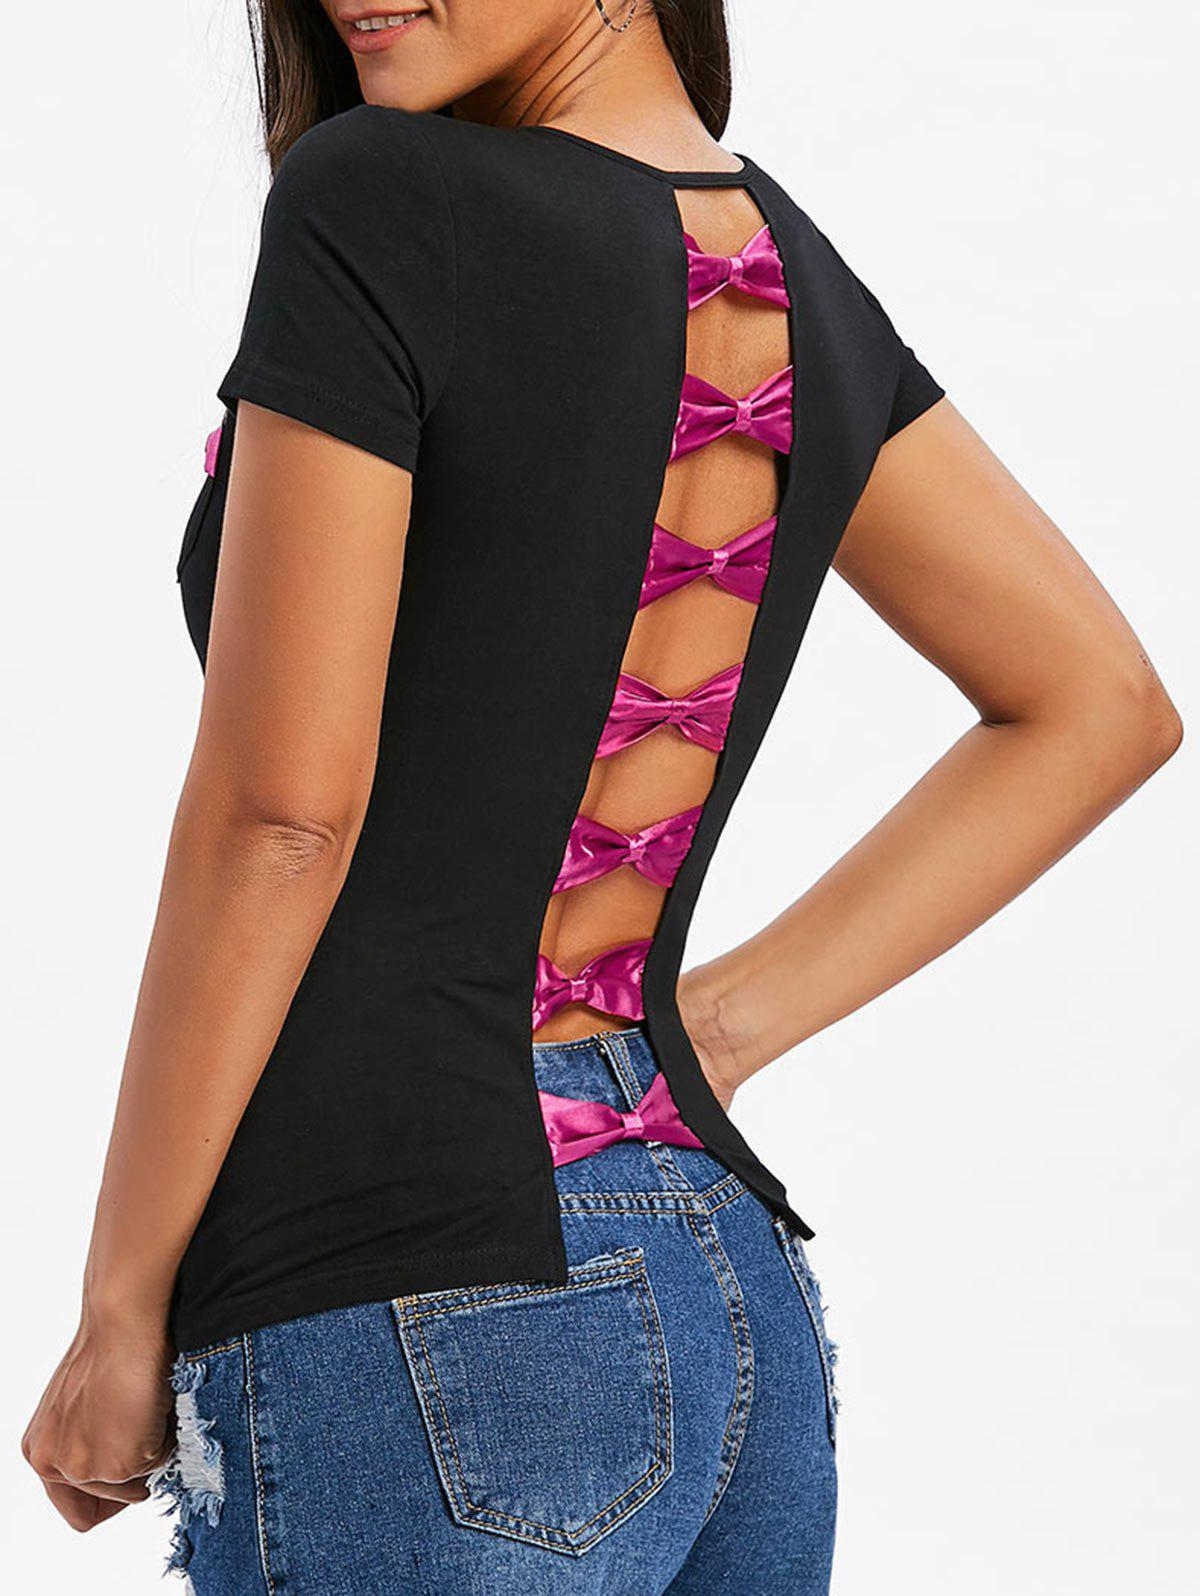 Bow Back V Neck Fitted T-shirt - BLACK / ROSE RED 2XL